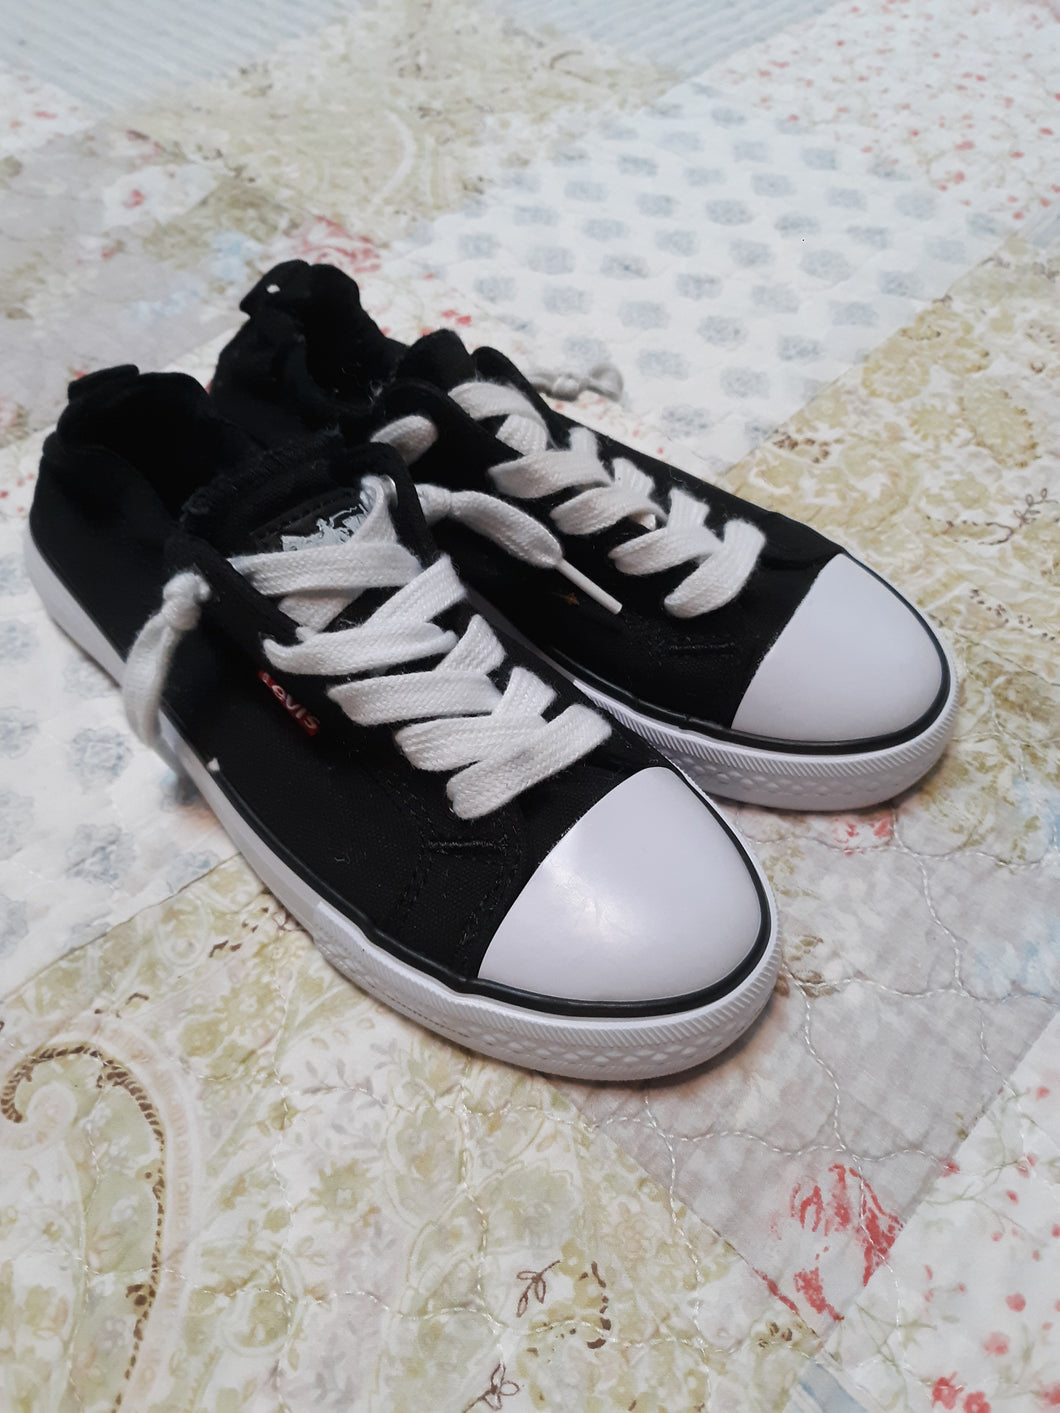 Childrens Boys Levi's Canvas Sneakers Skippies Shoes Size 3